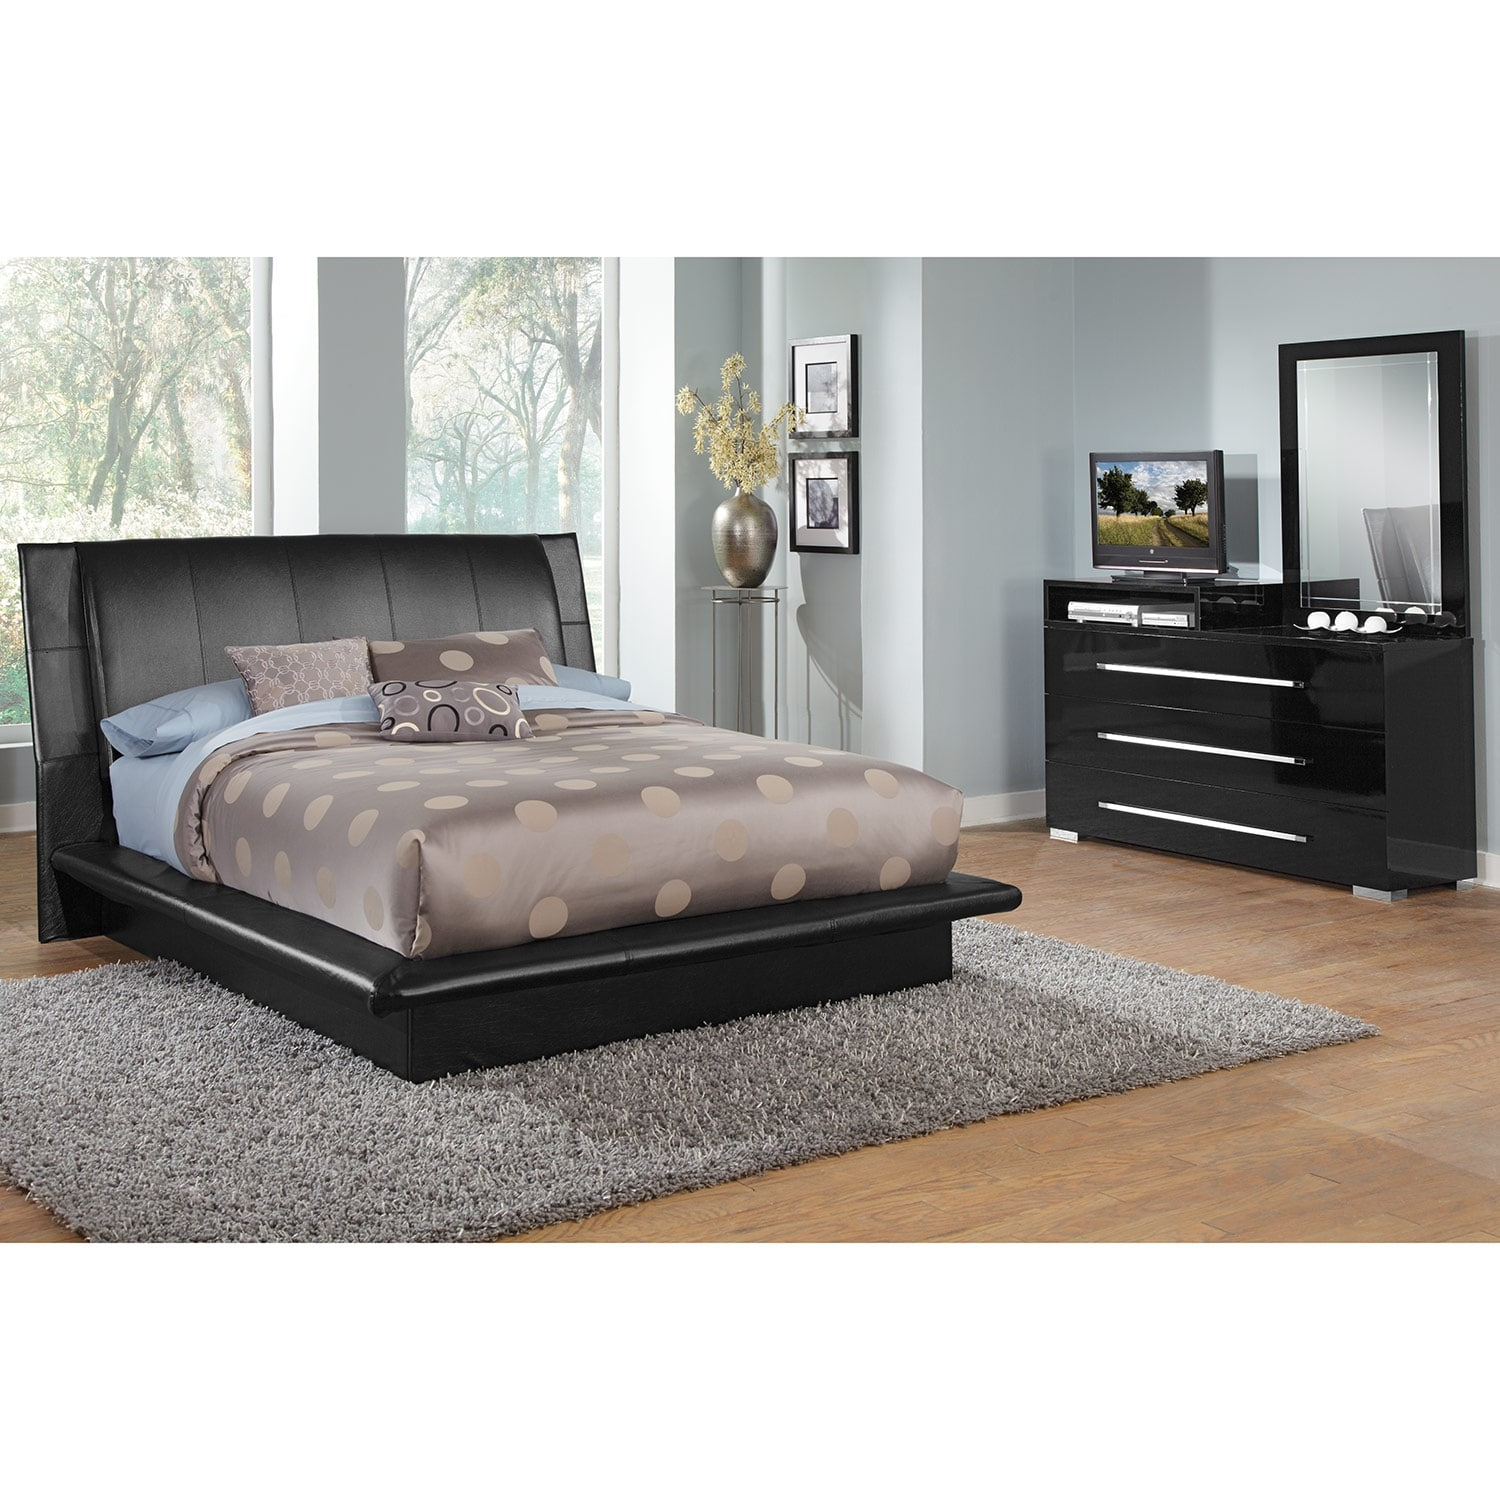 Dimora black 5 pc queen bedroom value city furniture for King bedroom furniture